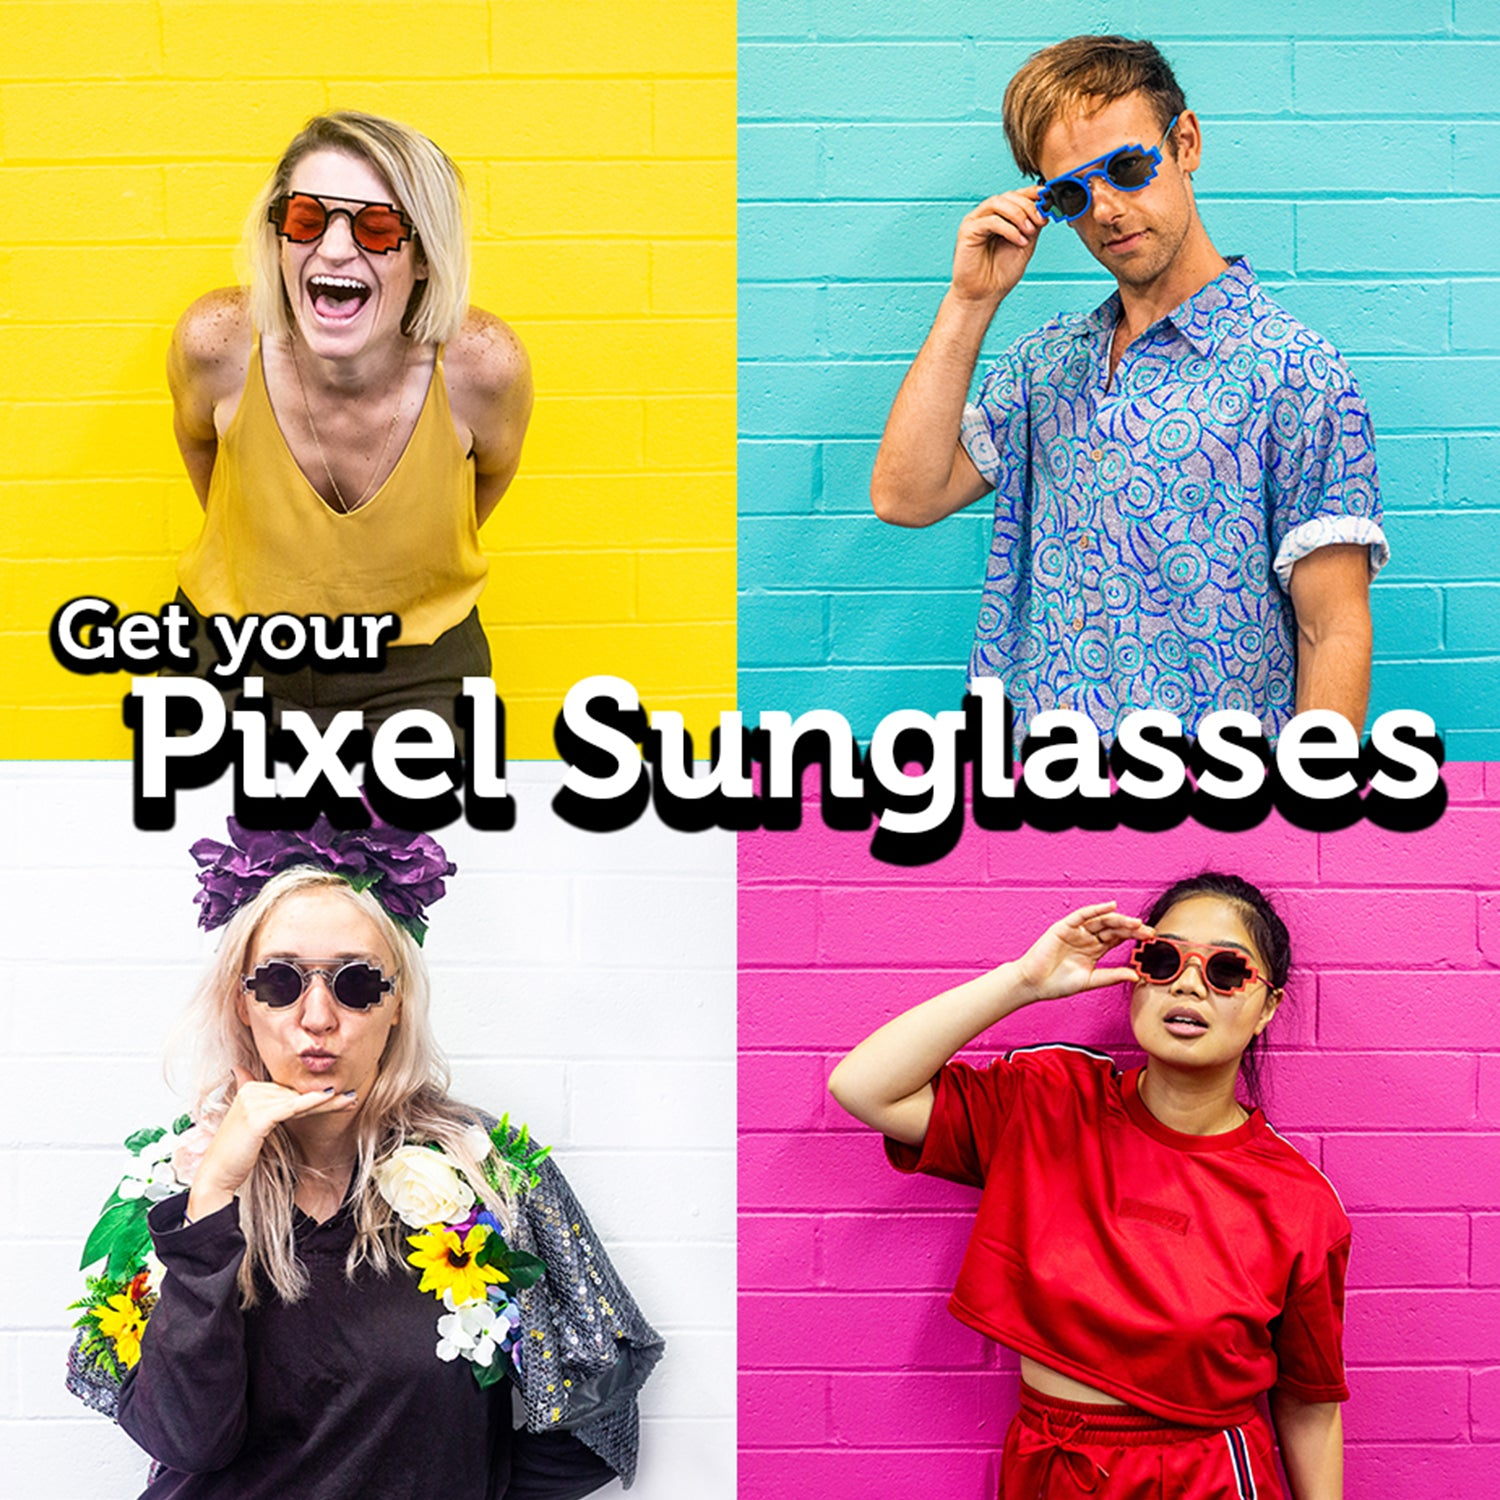 Pixel Sunglasses tile